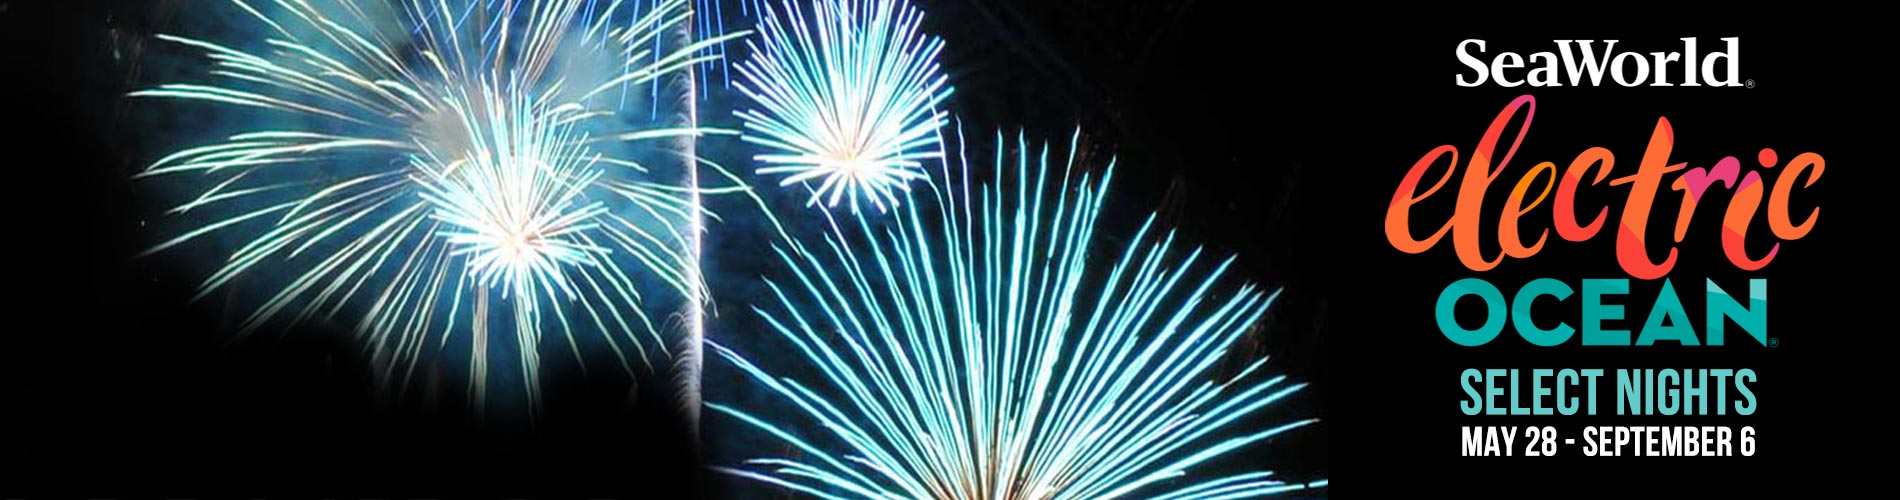 Fireworks during Electric Ocean at SeaWorld Orlando